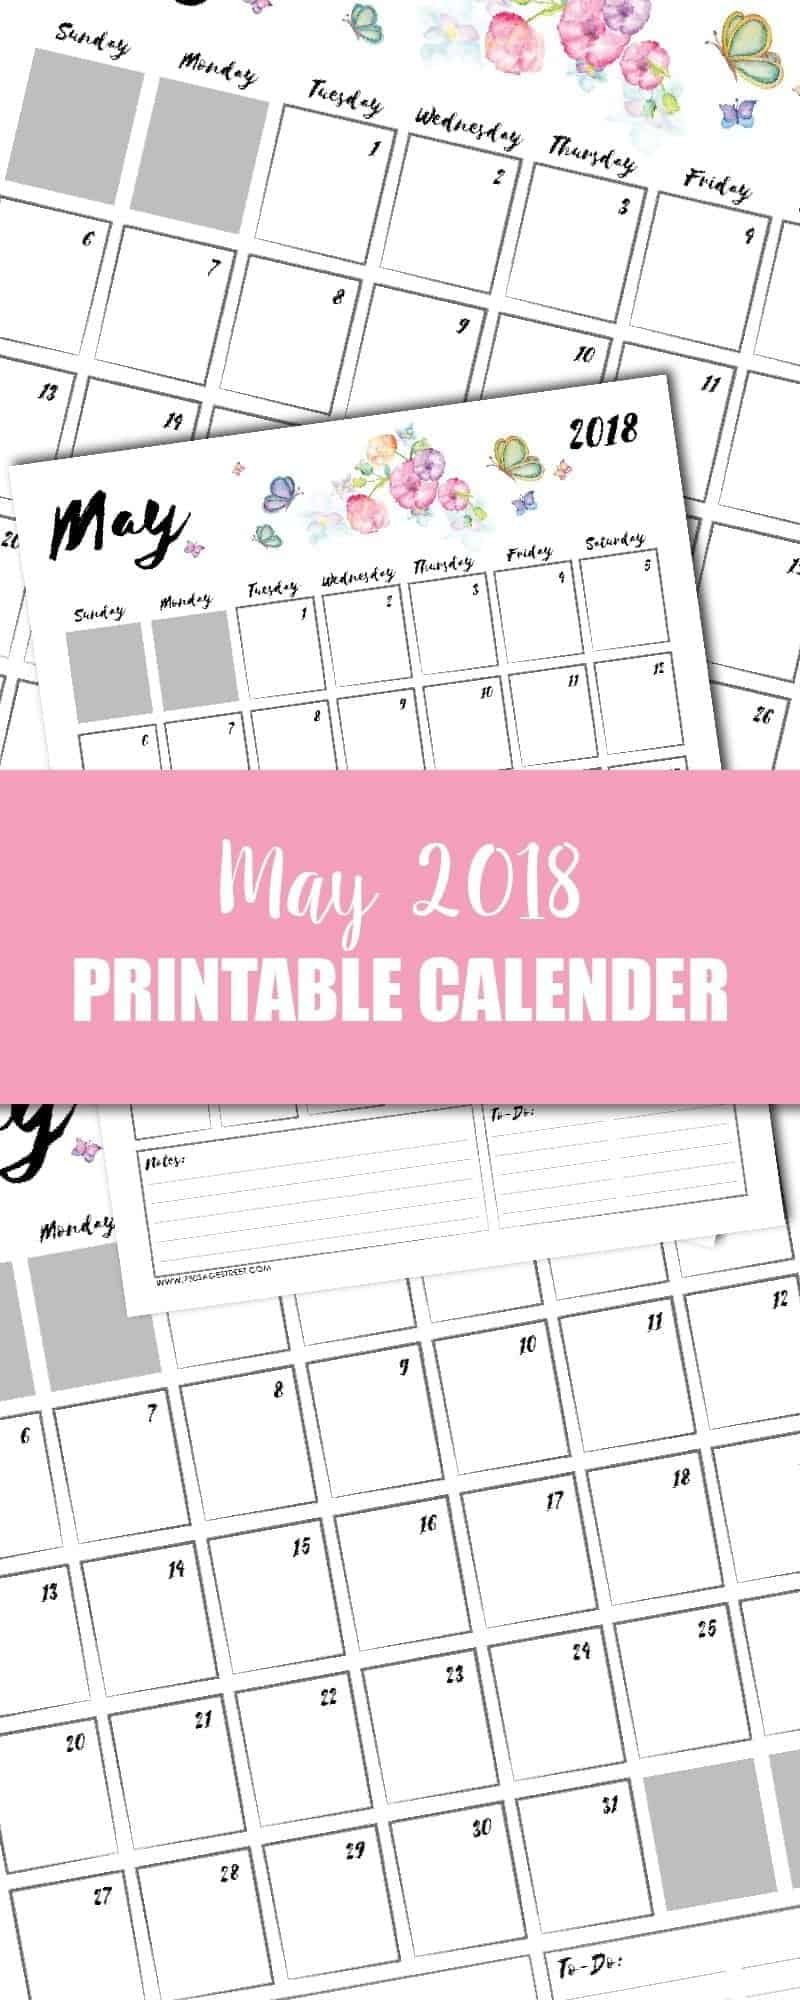 tall graphic showing a May 2018 printable calendar